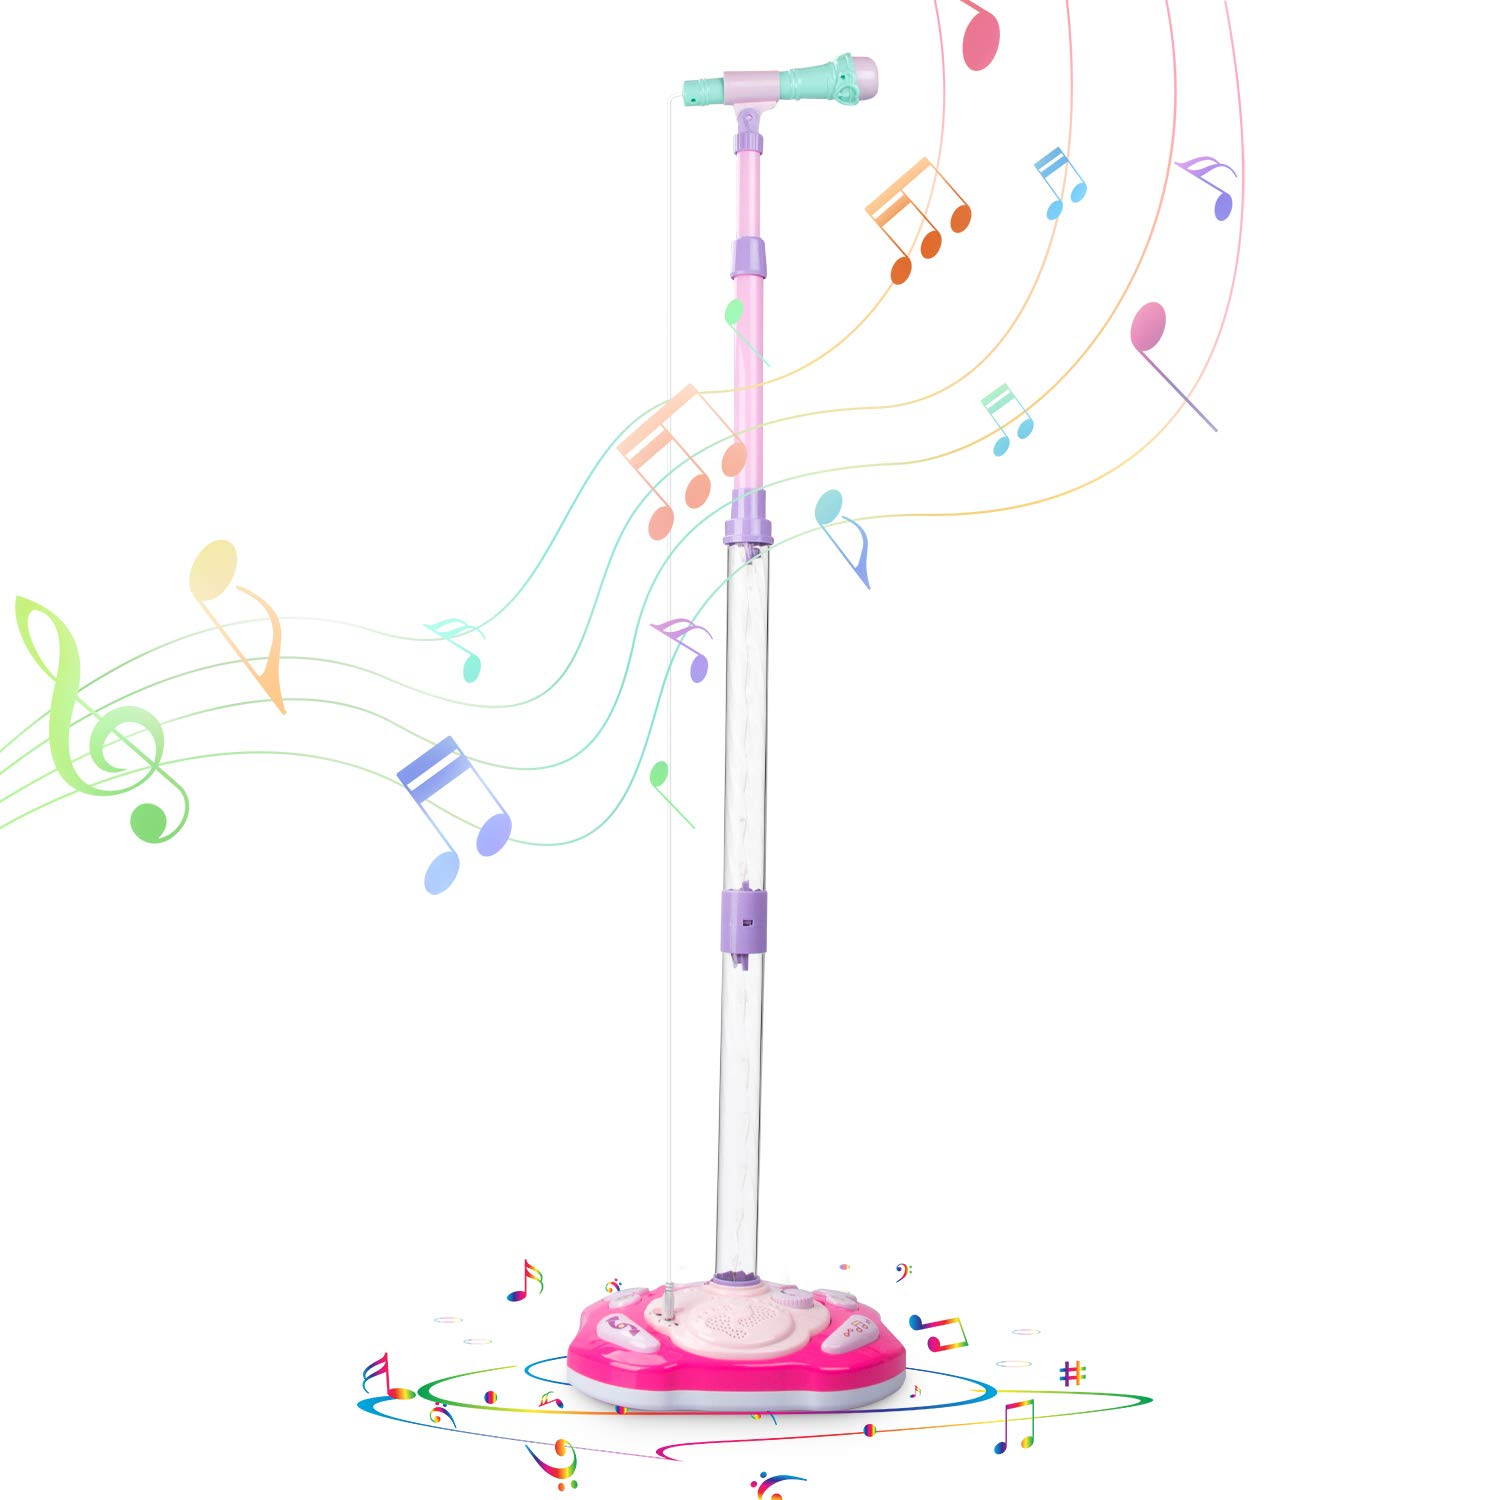 SAOCOOL Kids Microphone, Rechargeable Kids Karaoke Machine, Toddler Microphone Music Toy Set with Colored Lights Flashing & Adjustable Stand for Children Over 3 Years Old by SAOCOOL (Image #7)